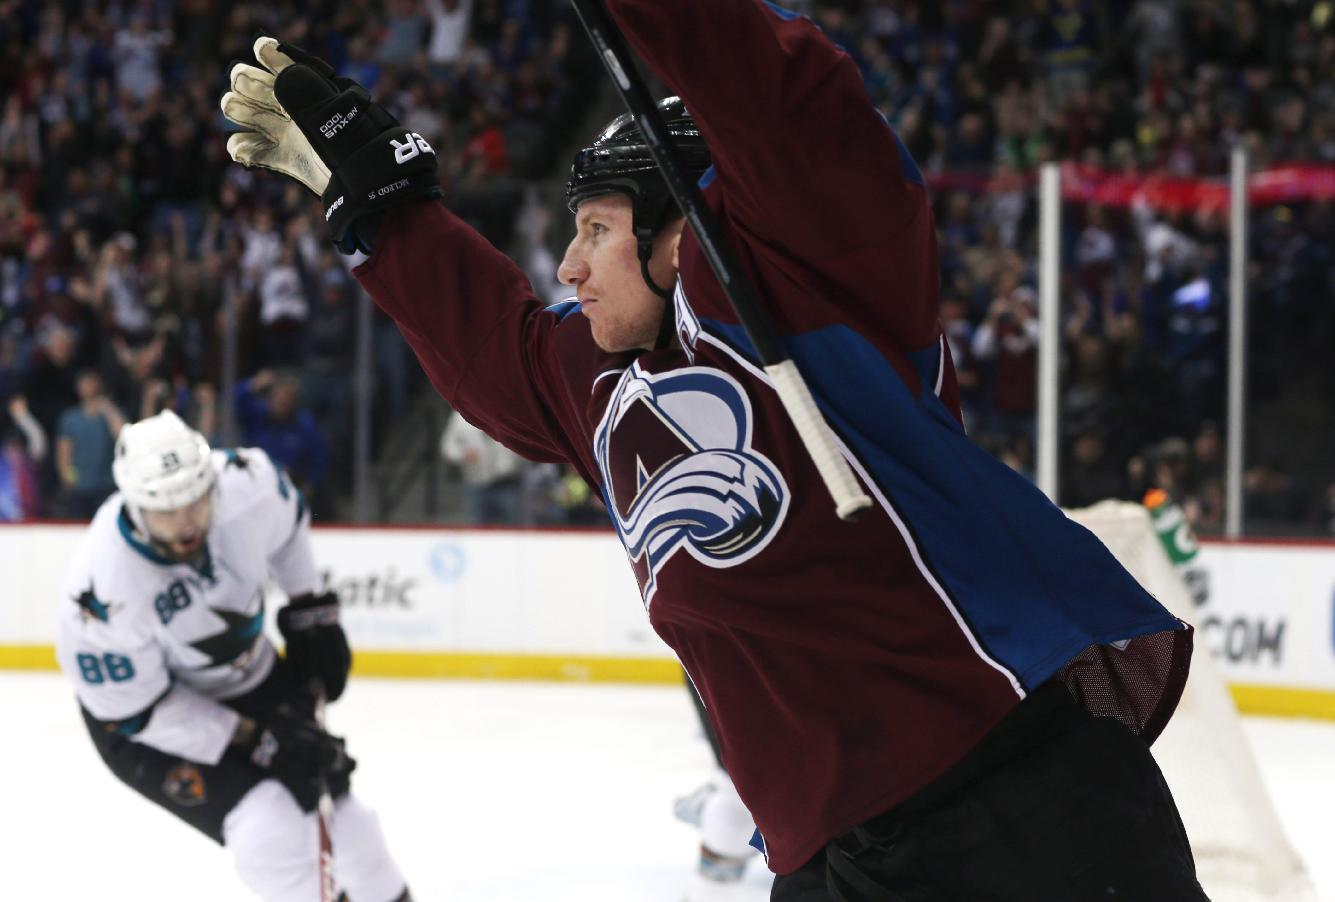 Colorado Avalanche left wing Cody McLeod, front, celebrates his short-handed goal as San Jose Sharks right wing Brent Burns reacts in the background in the first period of an NHL hockey game on Saturday, March 29, 2014, in Denver